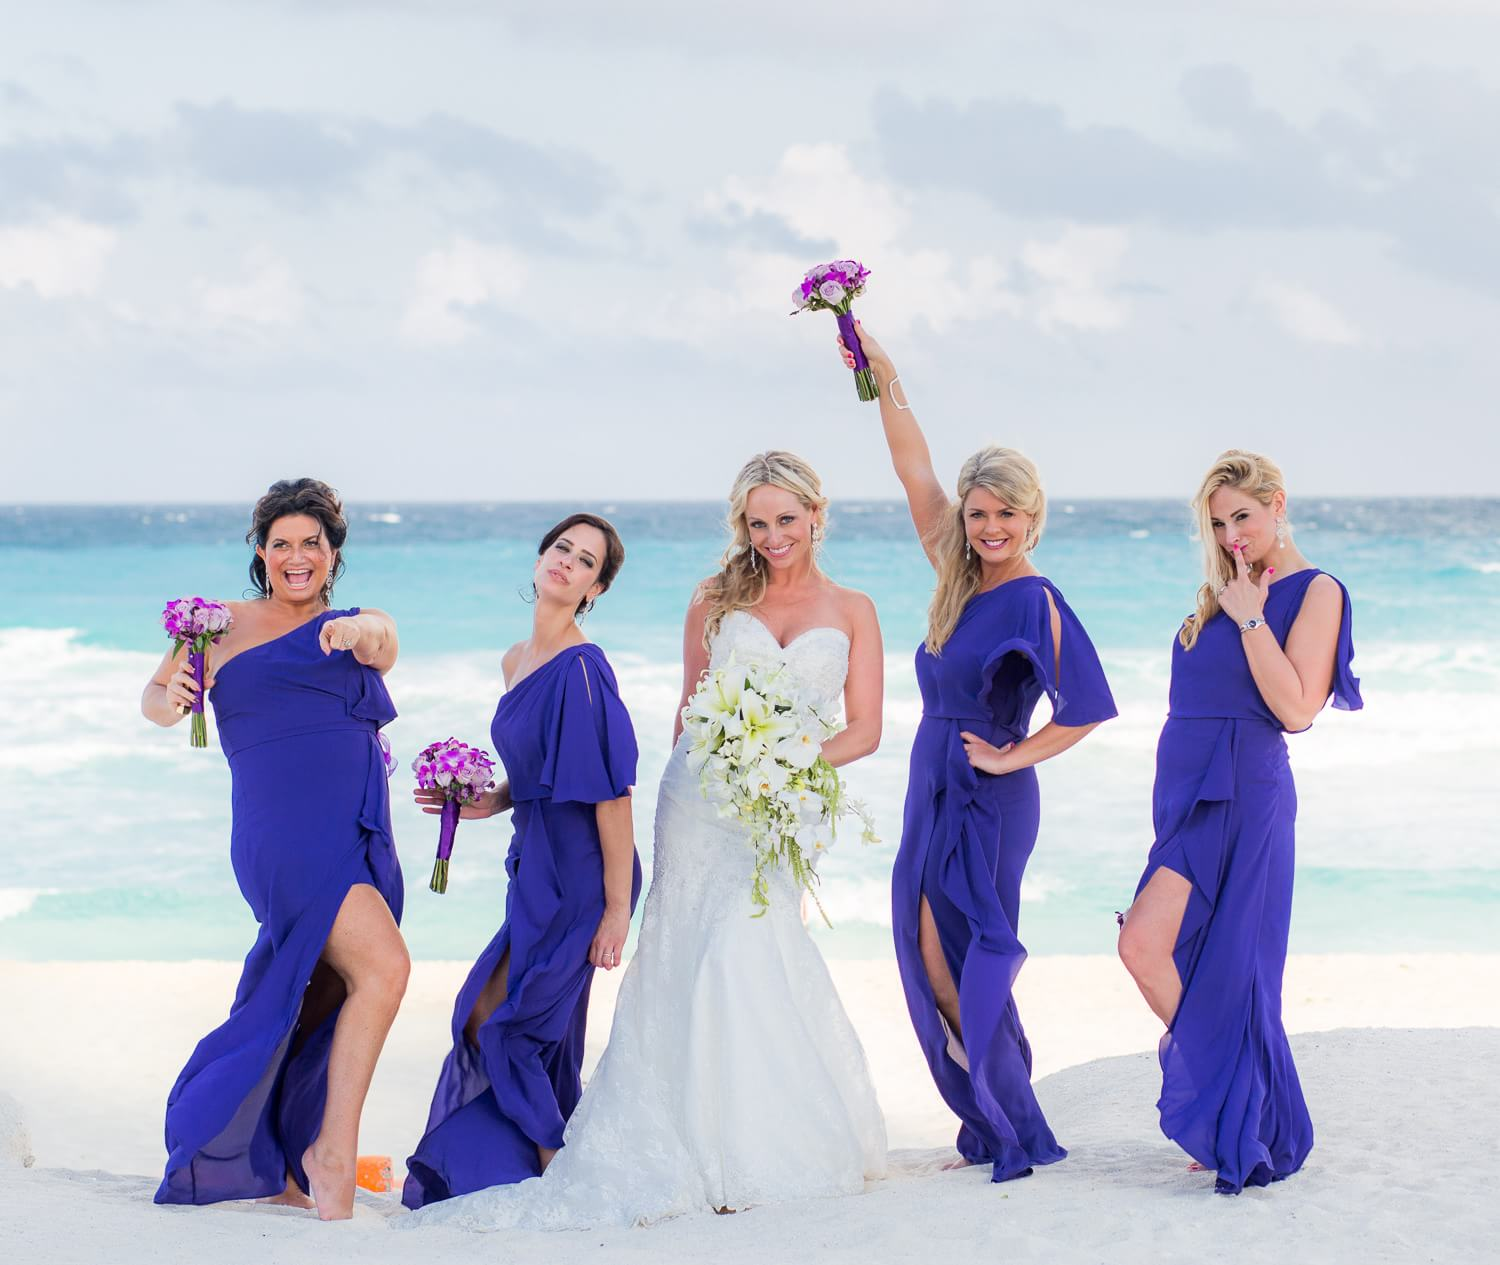 Bridesmaids on the beach at Cancun wedding